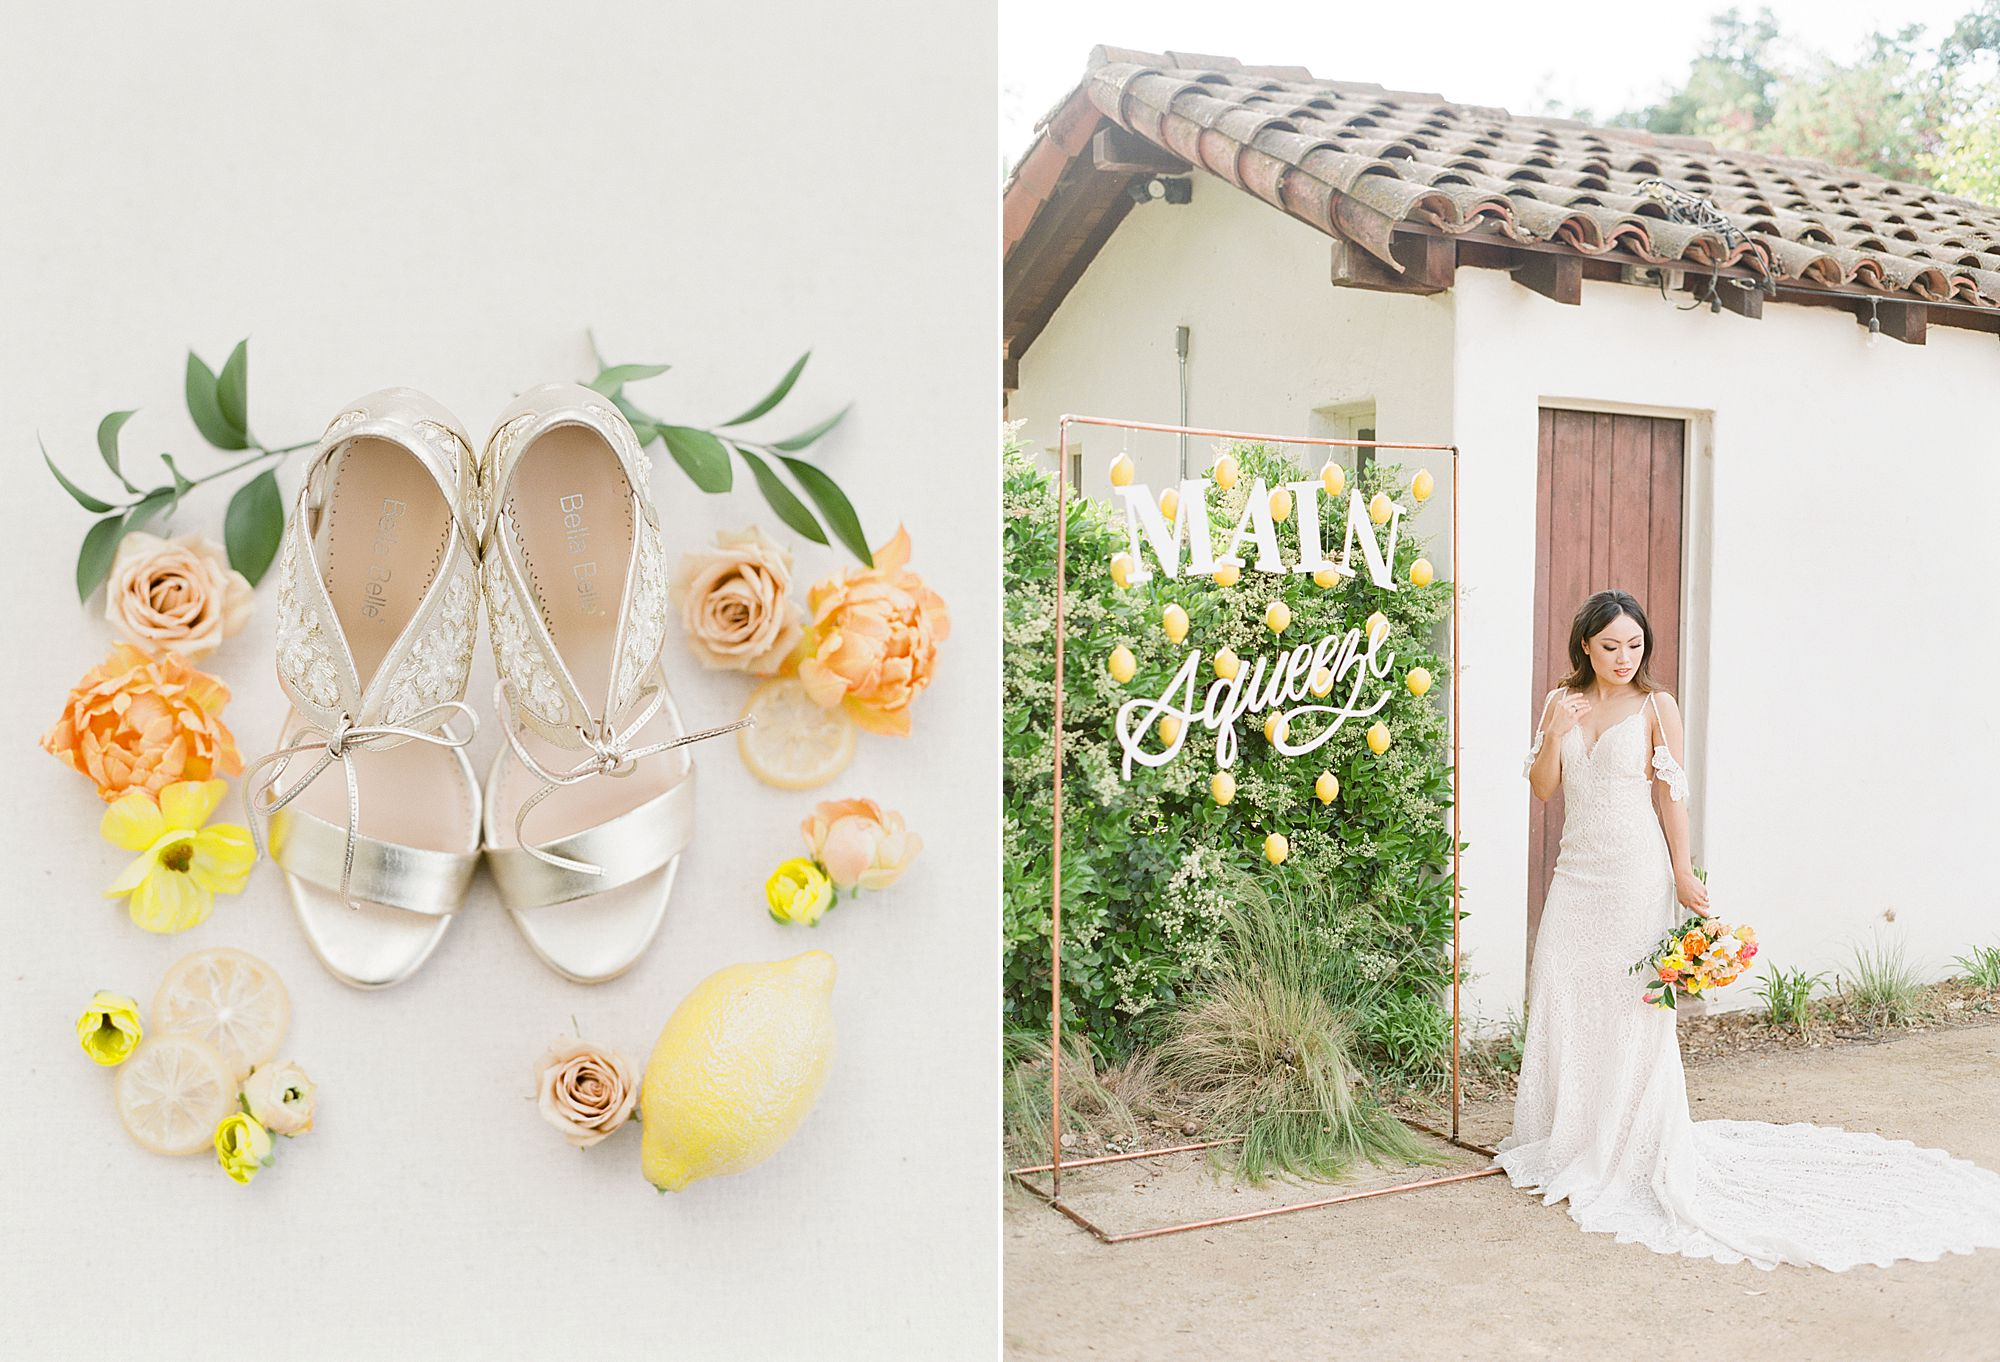 Italian Wedding Inspiration at The Maples Wedding & Event Center - Featured on Wedding Chicks - Ashley Baumgartner - Sacramento Wedding Phtoographer_0002.jpg